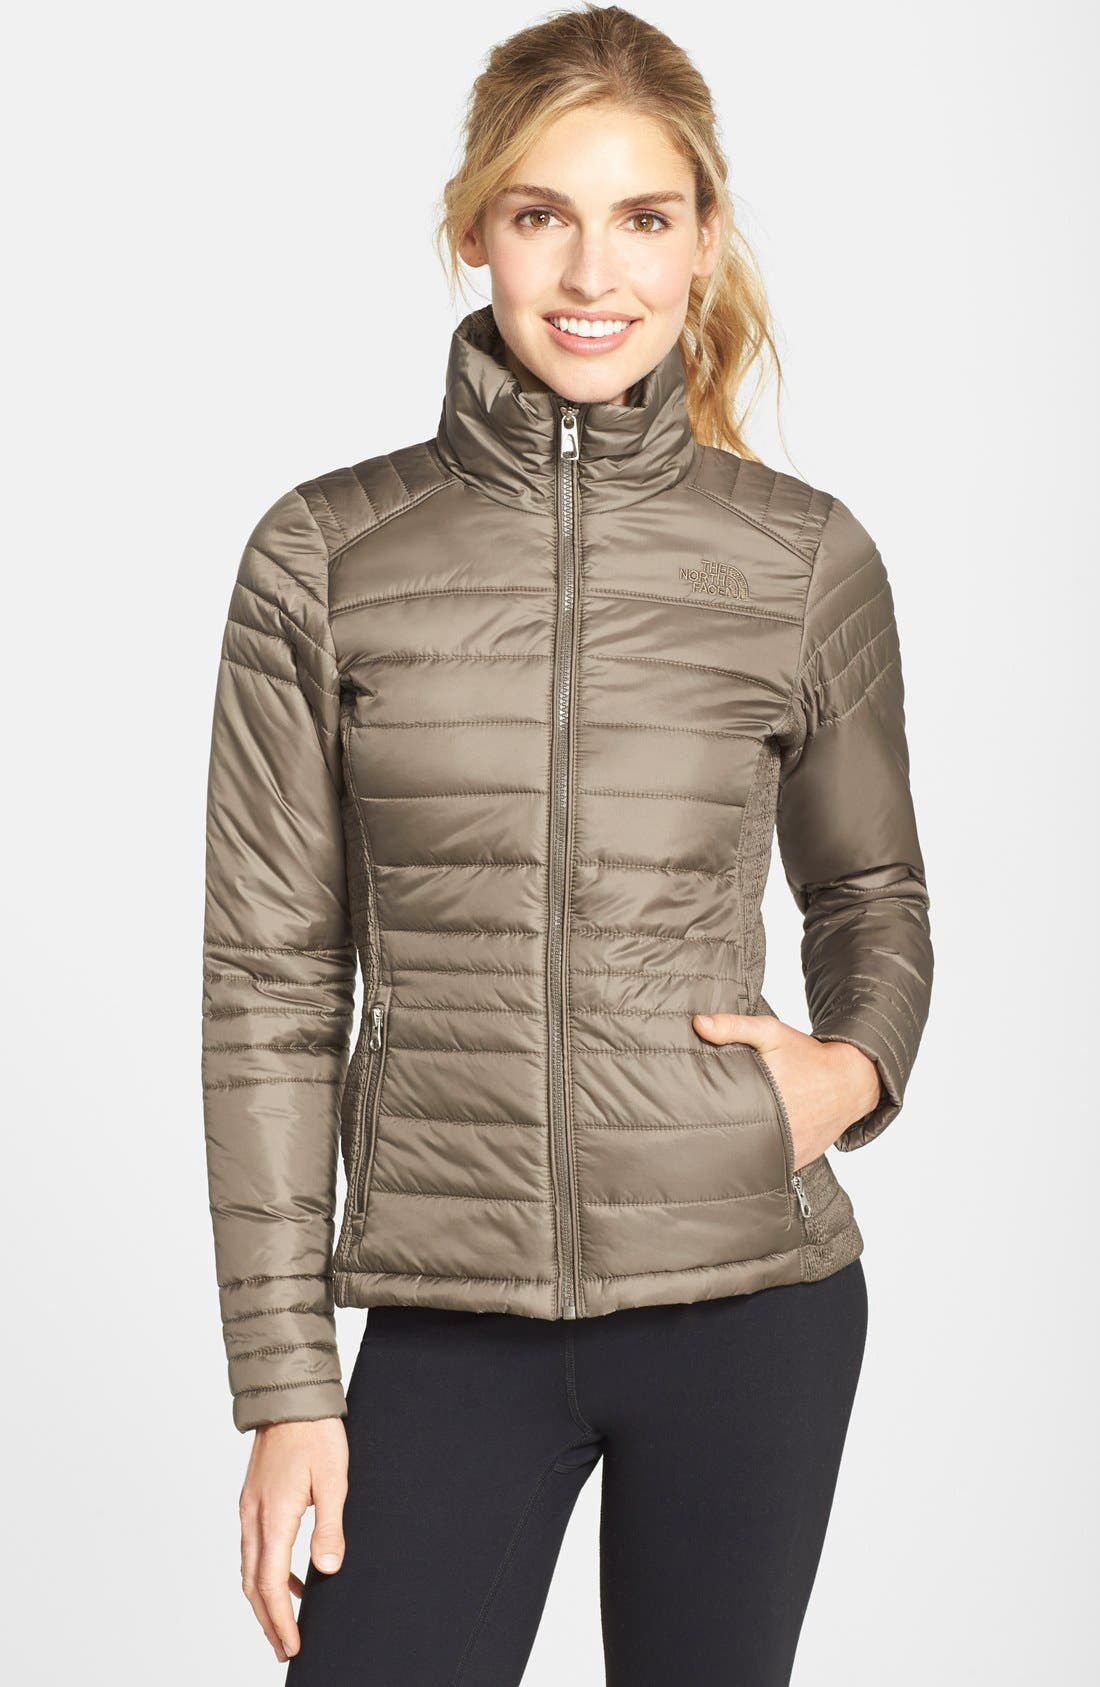 Main Image - The North Face 'Aleycia' Insulated Jacket (Nordstrom Exclusive)